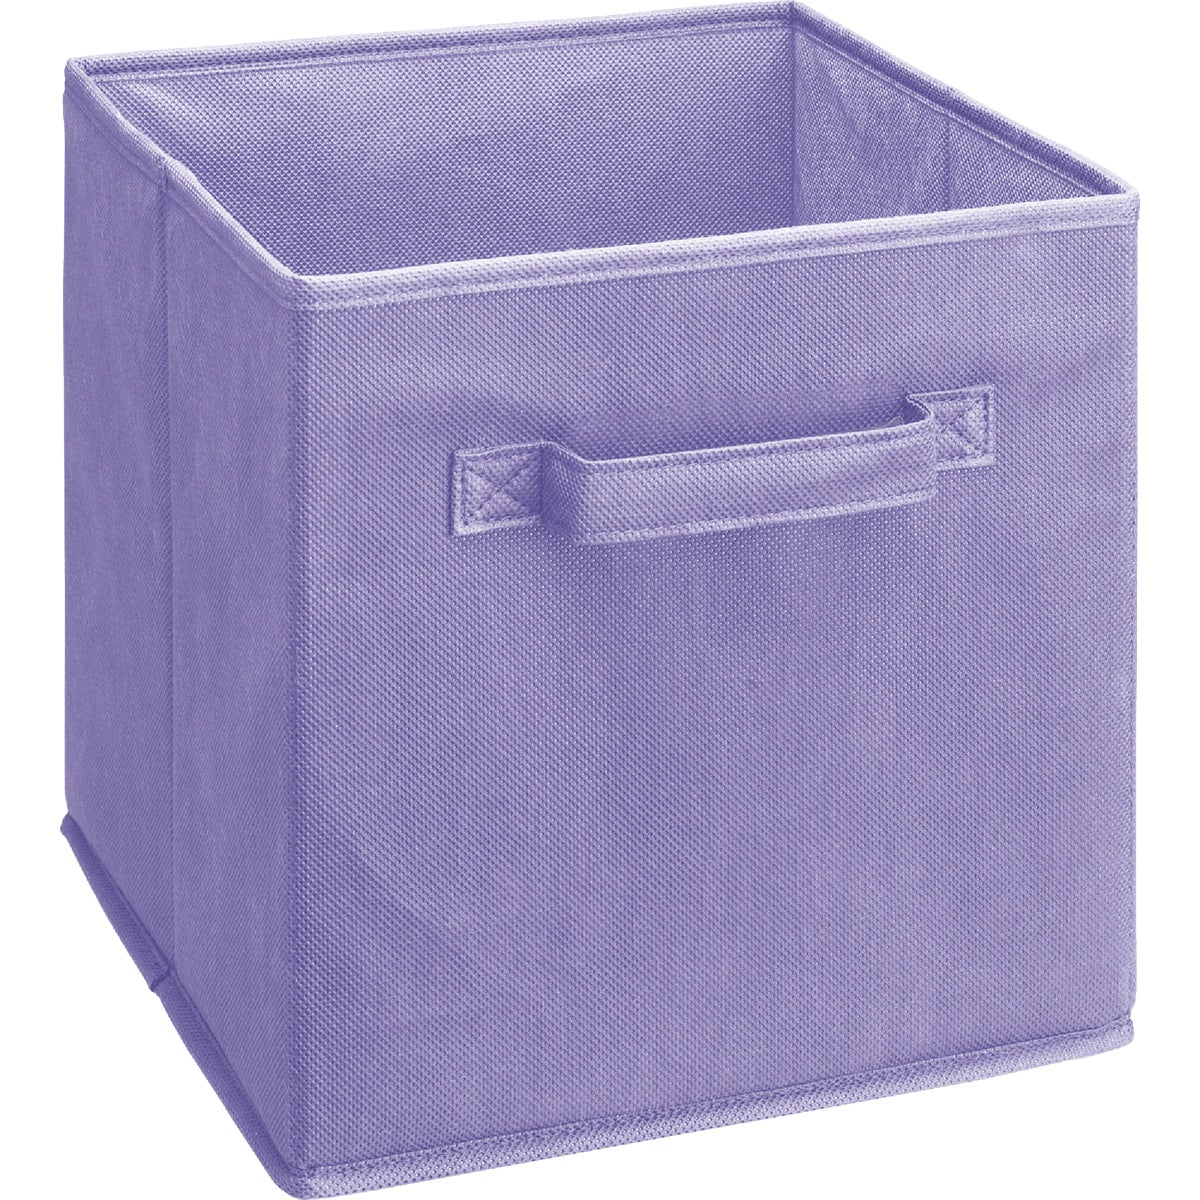 LT PURPLE FABRIC DRAWER